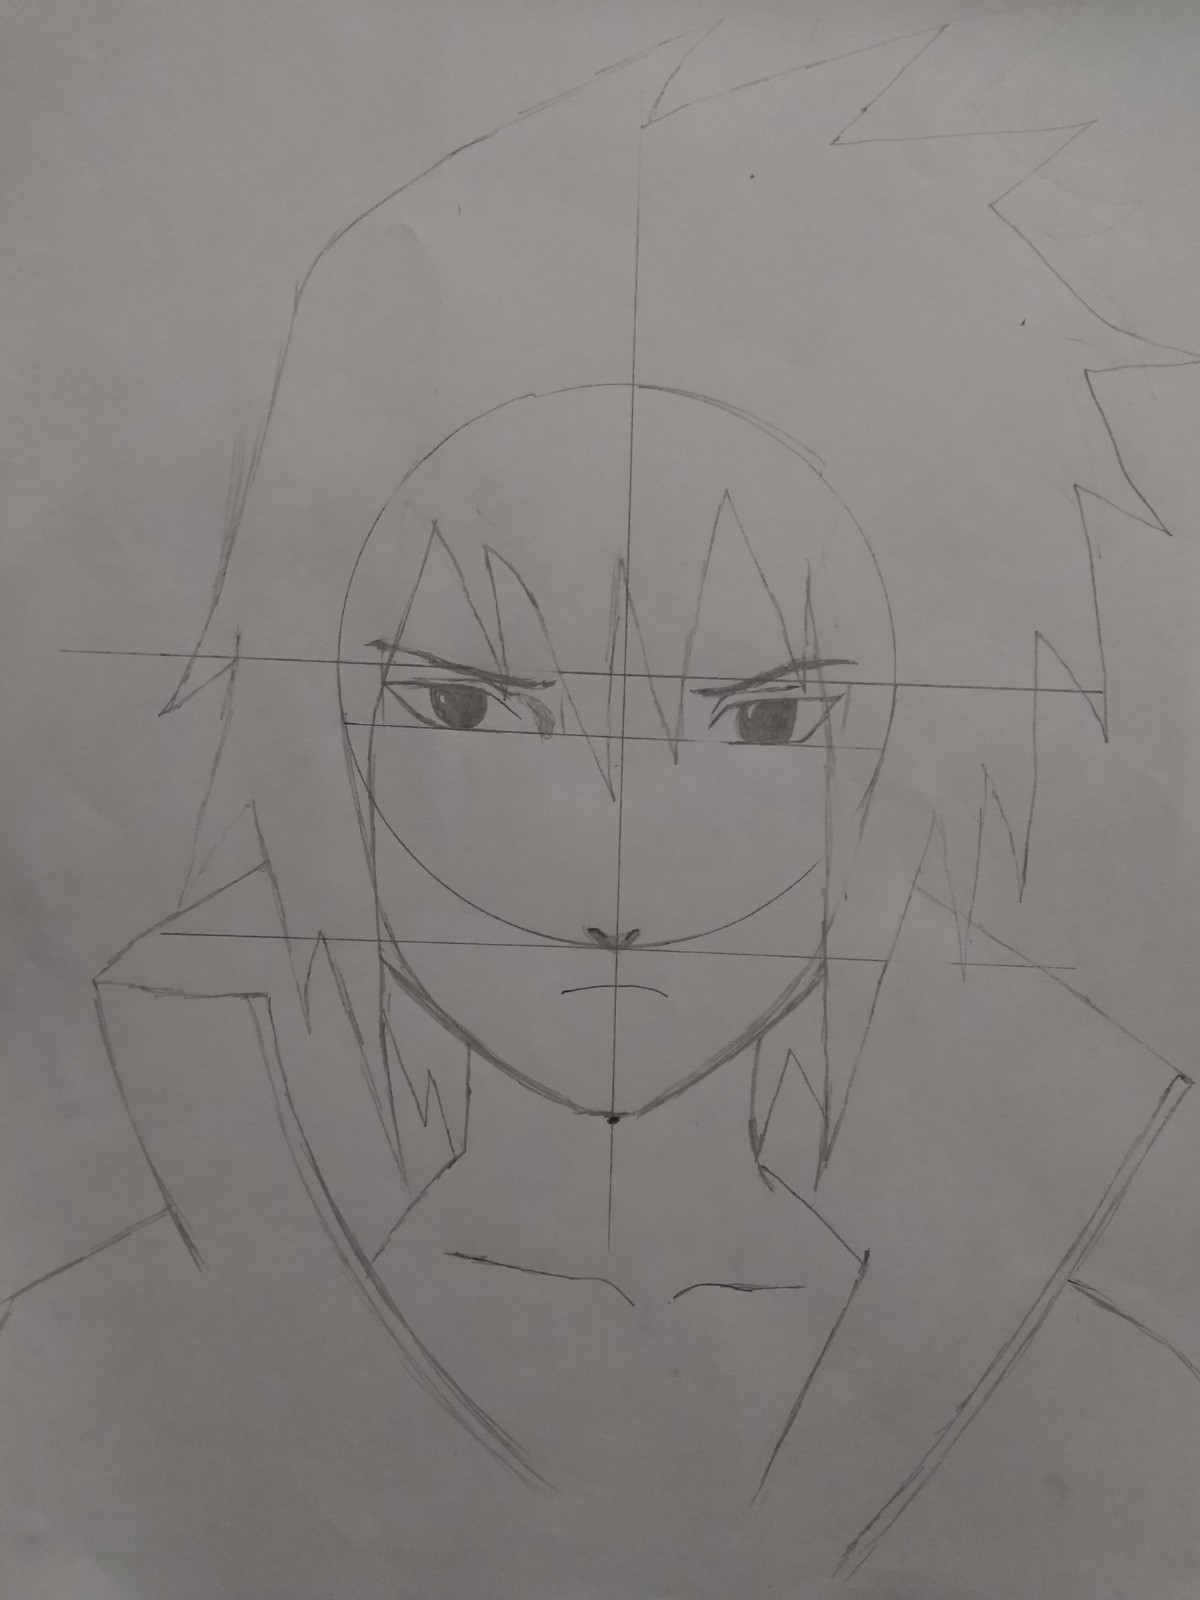 Passo 13 De Como Desenhar o Sasuke - How to Draw Sasuke - Video Teaches Sasuke in Less than 5 Minutes!